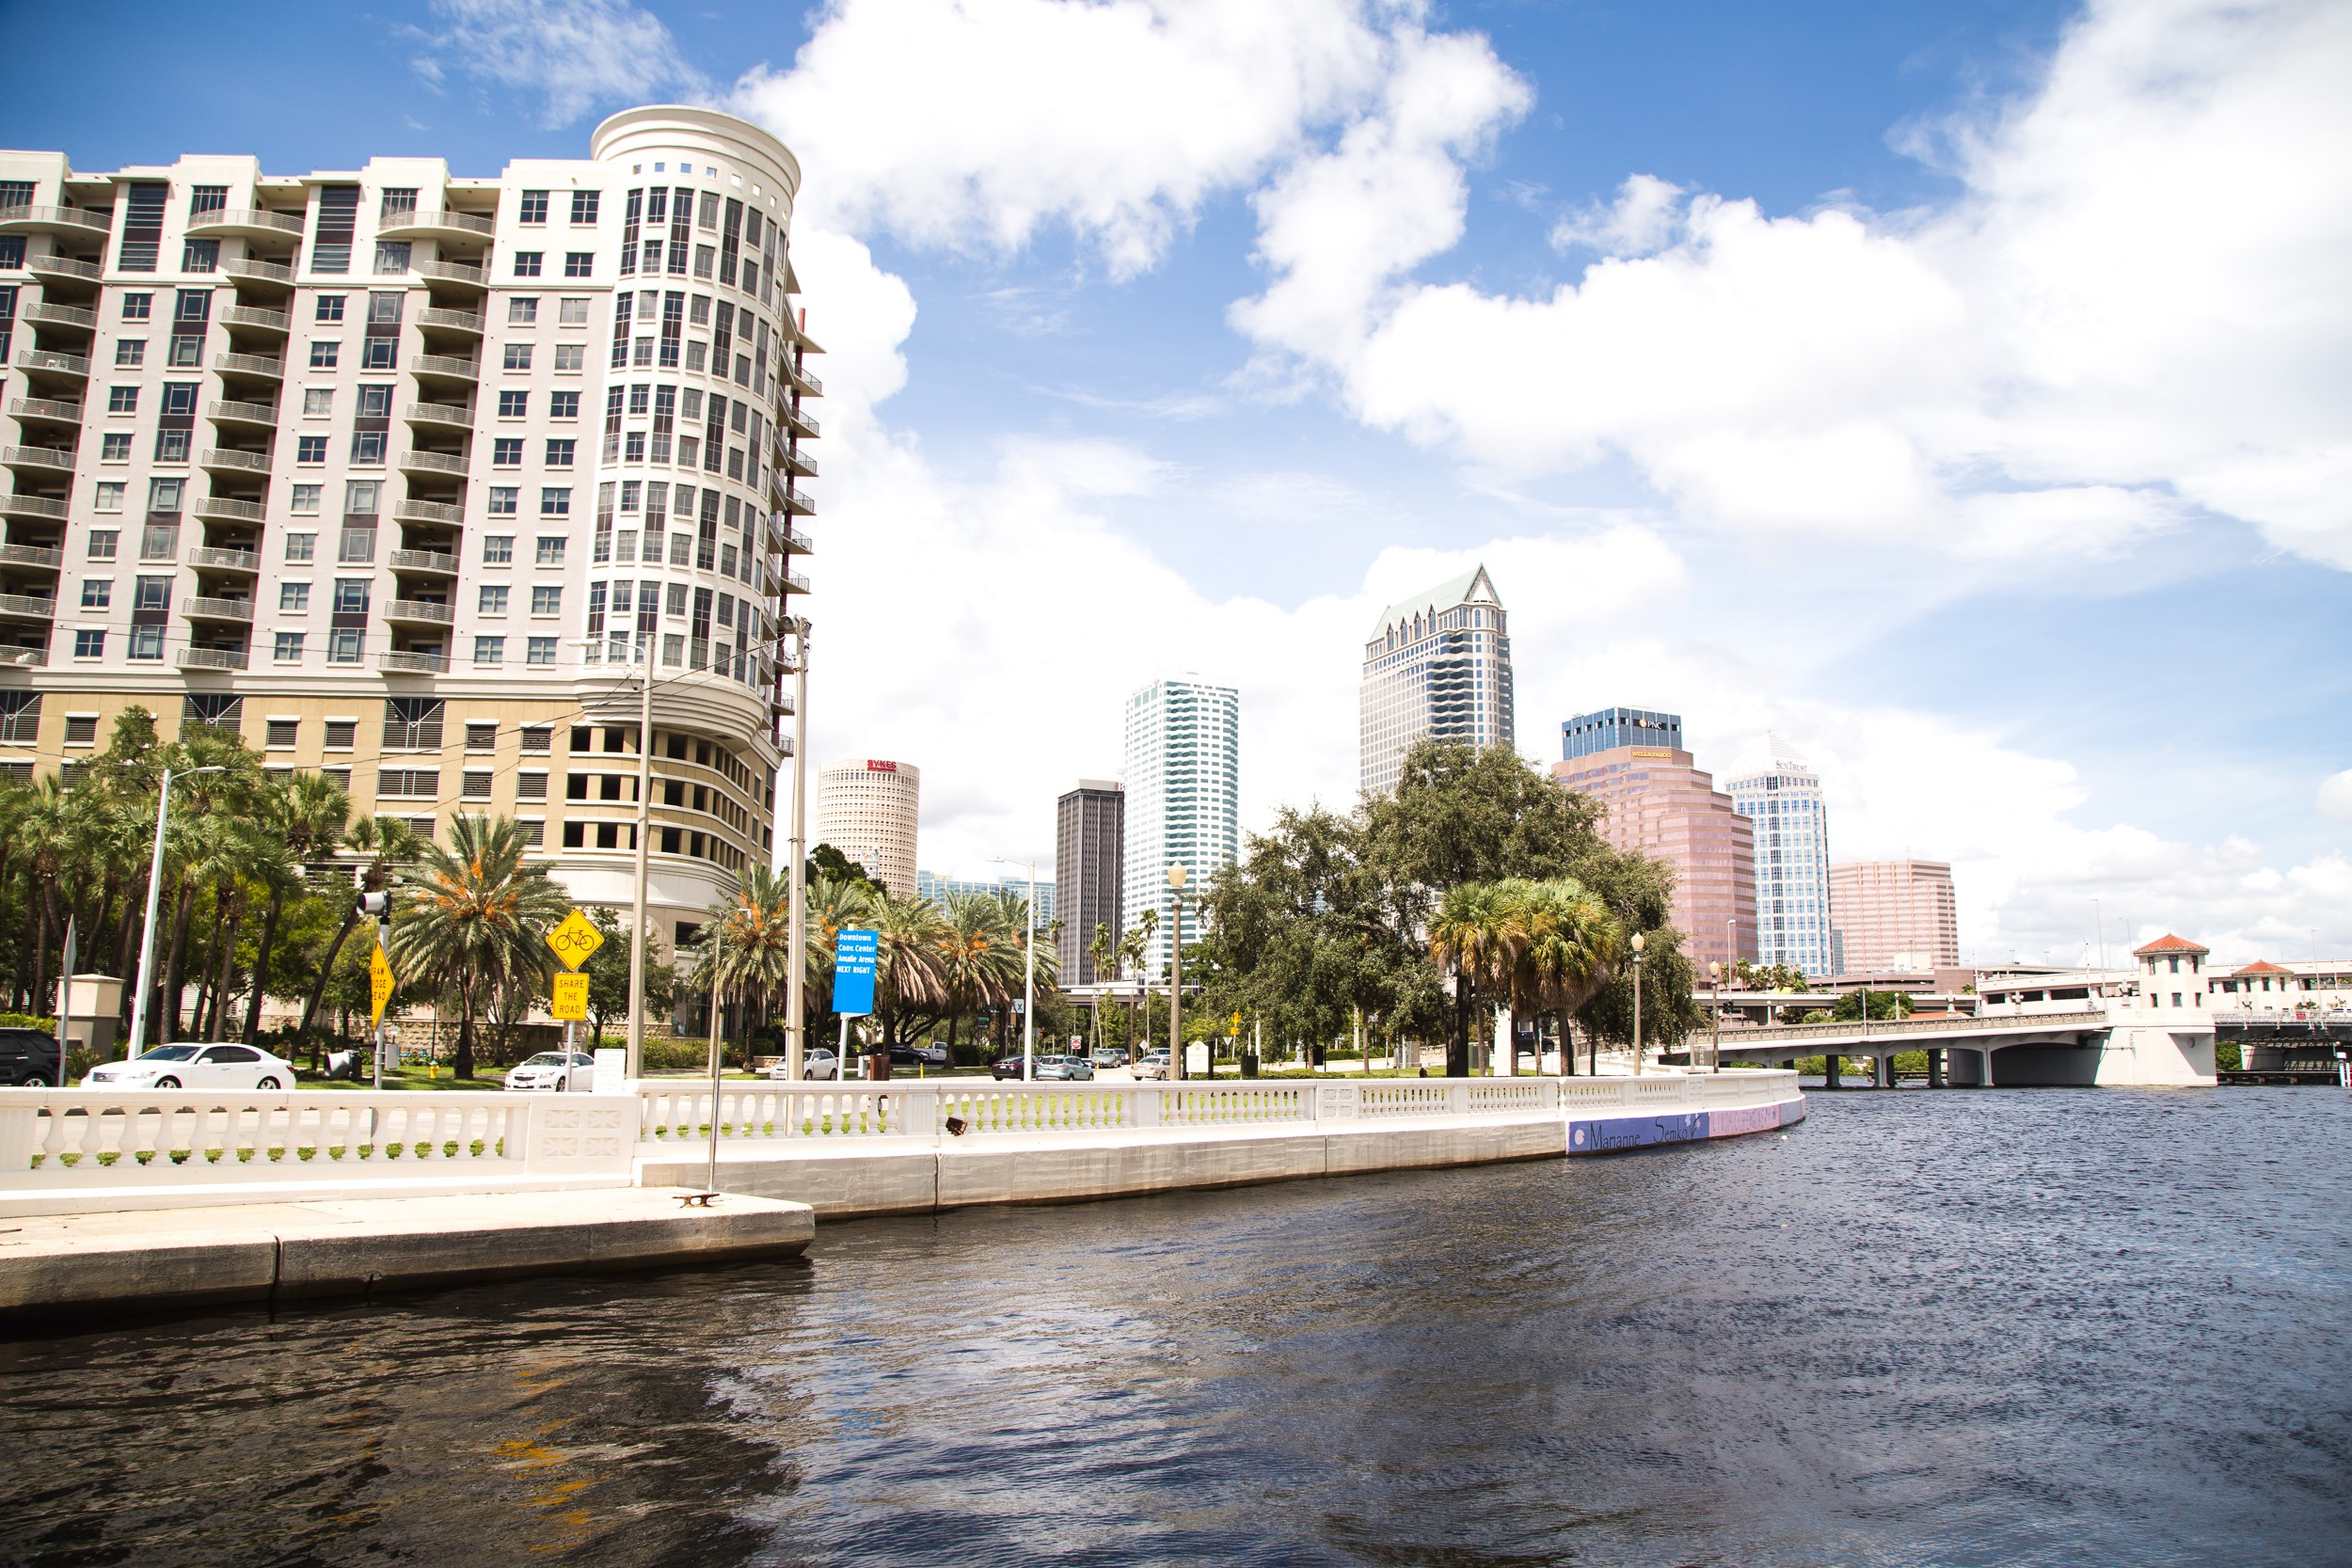 Image of 10 Free Things To Do in Tampa Bay